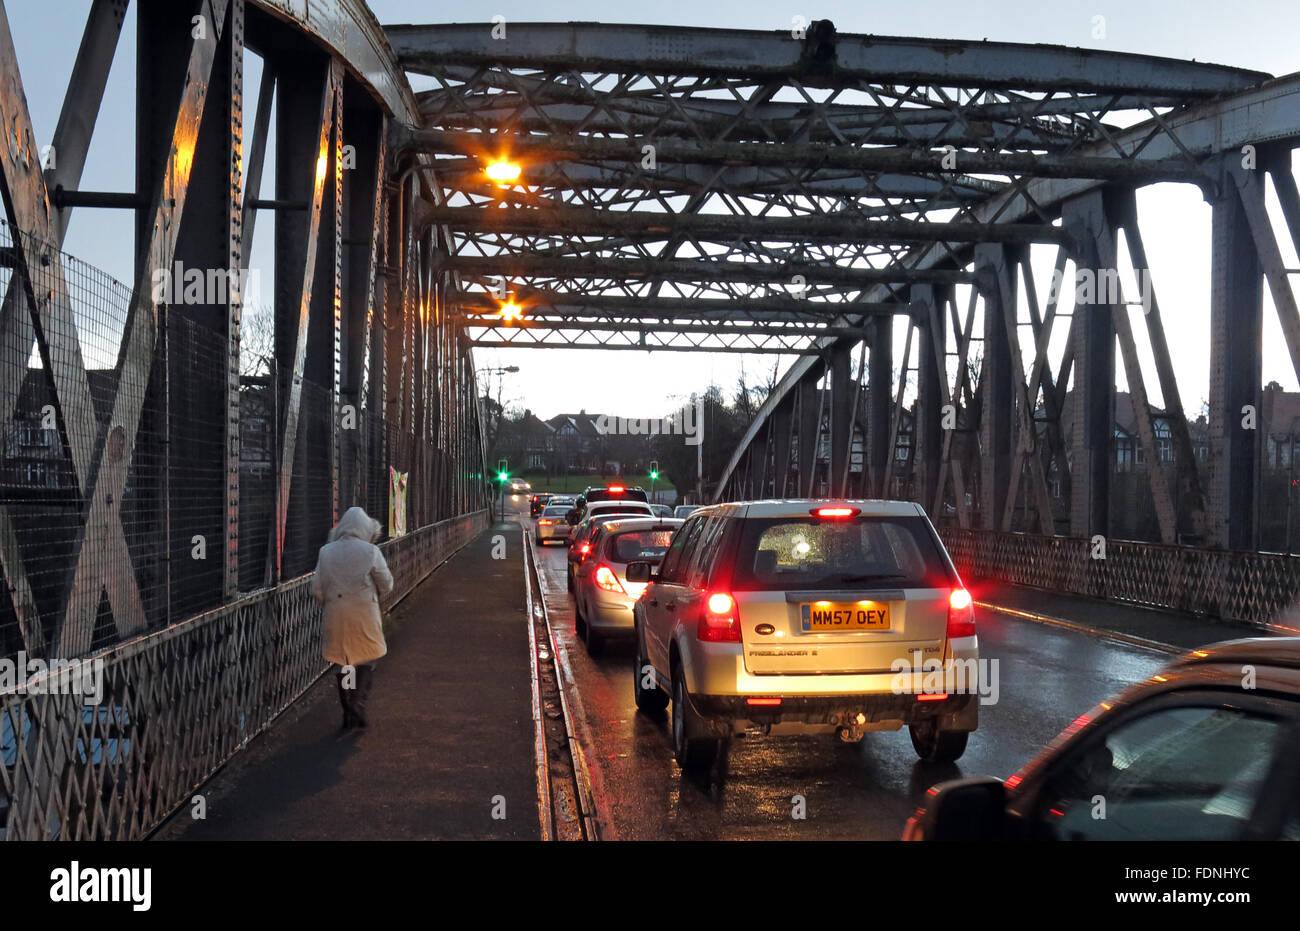 rd,rain,wet,delay,delays,swing,crossing,Warrington,Cheshire,England,UK,United,Kingdom,at,dusk,more,congestion,steel,iron,person,woman,walk,walking,walker,with,car,cars,rear,lights,brake,Latchford,Knutsford Road,Manchester Ship Canal,Road Bridge,with walker,Brake Light,Brake Lights,GoTonySmith,@HotpixUK,night,delay,delays,delayed.late,later,WBC,Buy Pictures of,Buy Images Of,Images of,Stock Images